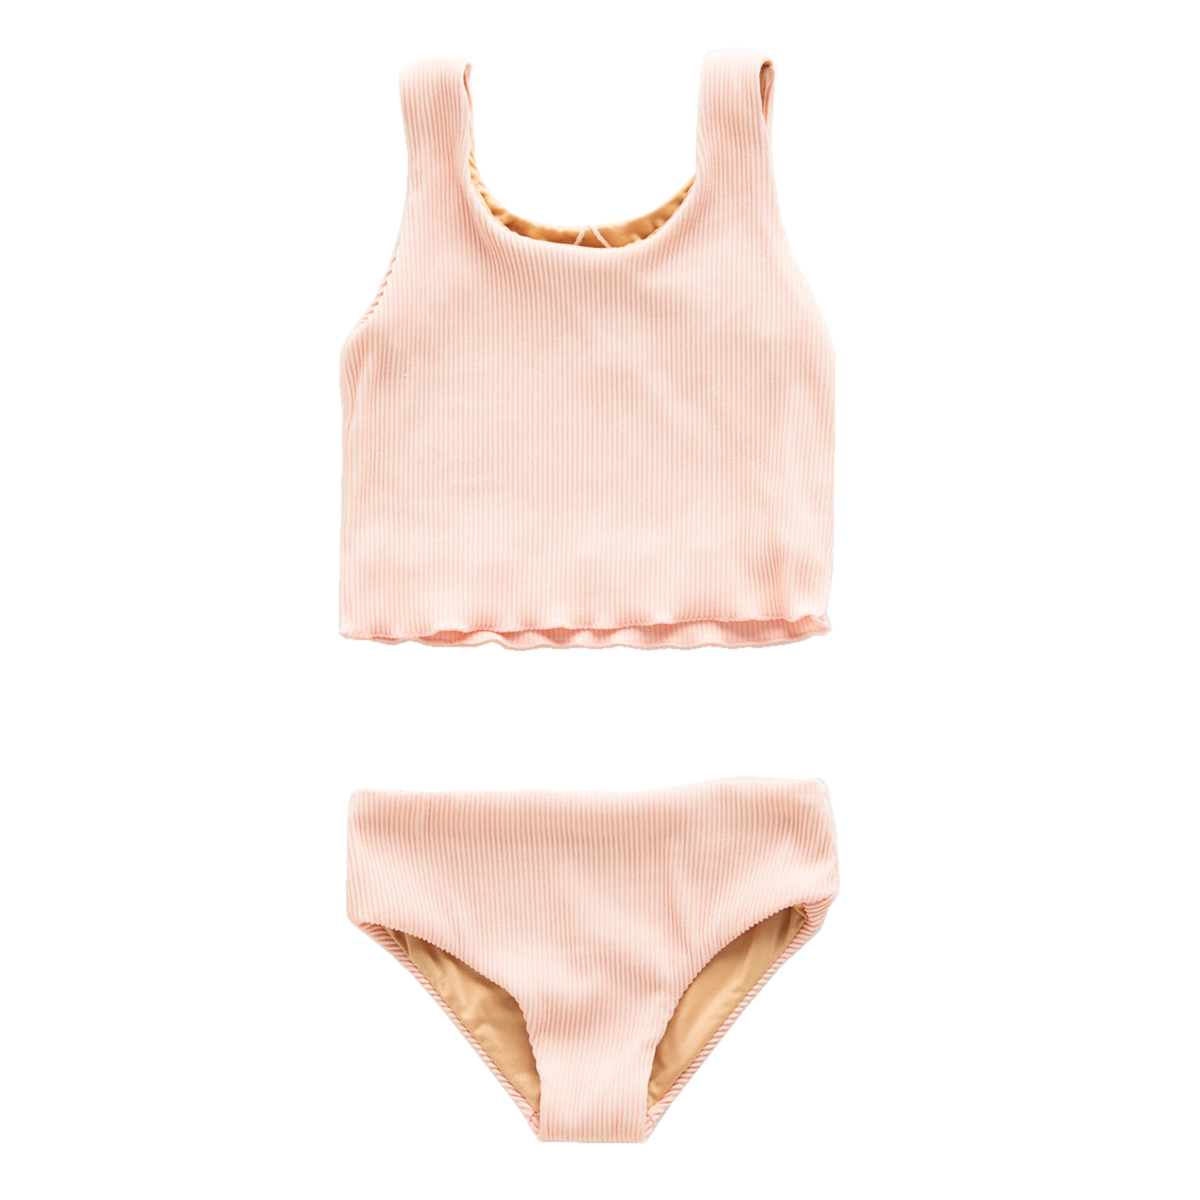 Zulu and Zephyr Mini Mermaid Edge Two Piece Swimsuit in Blush